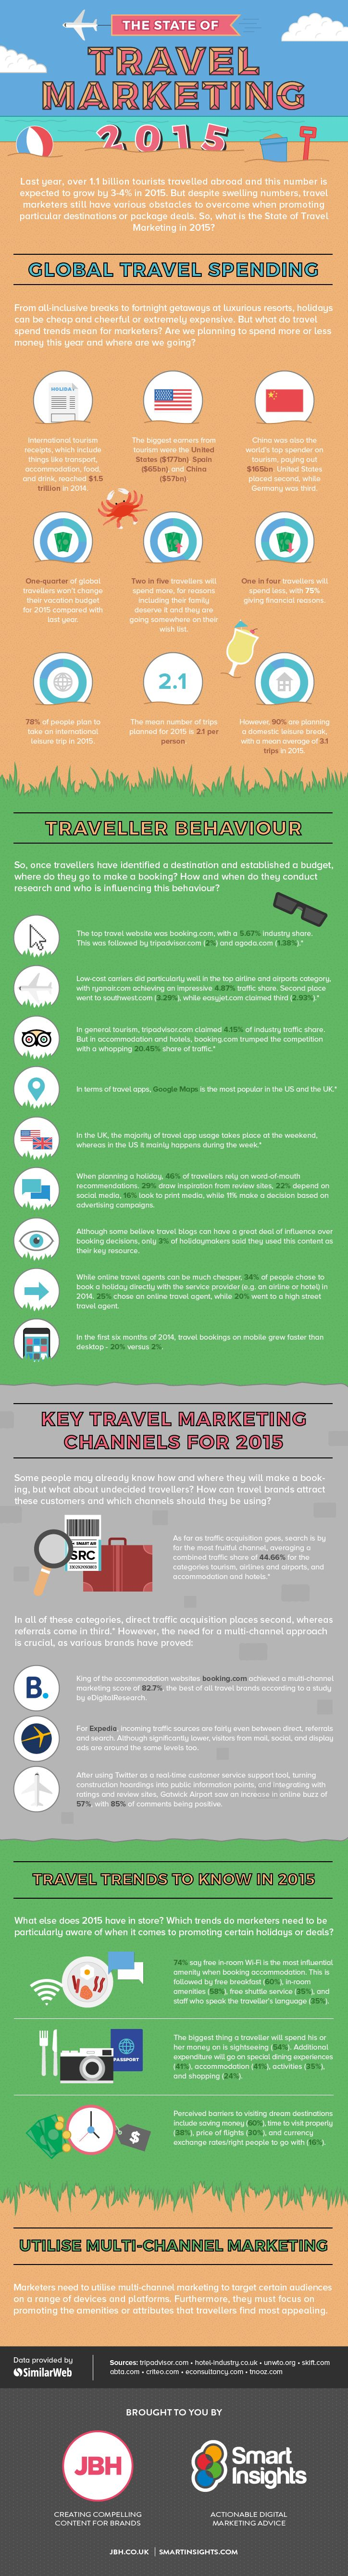 The State of Travel Marketing 2015 #infographic #Travel #Marketing